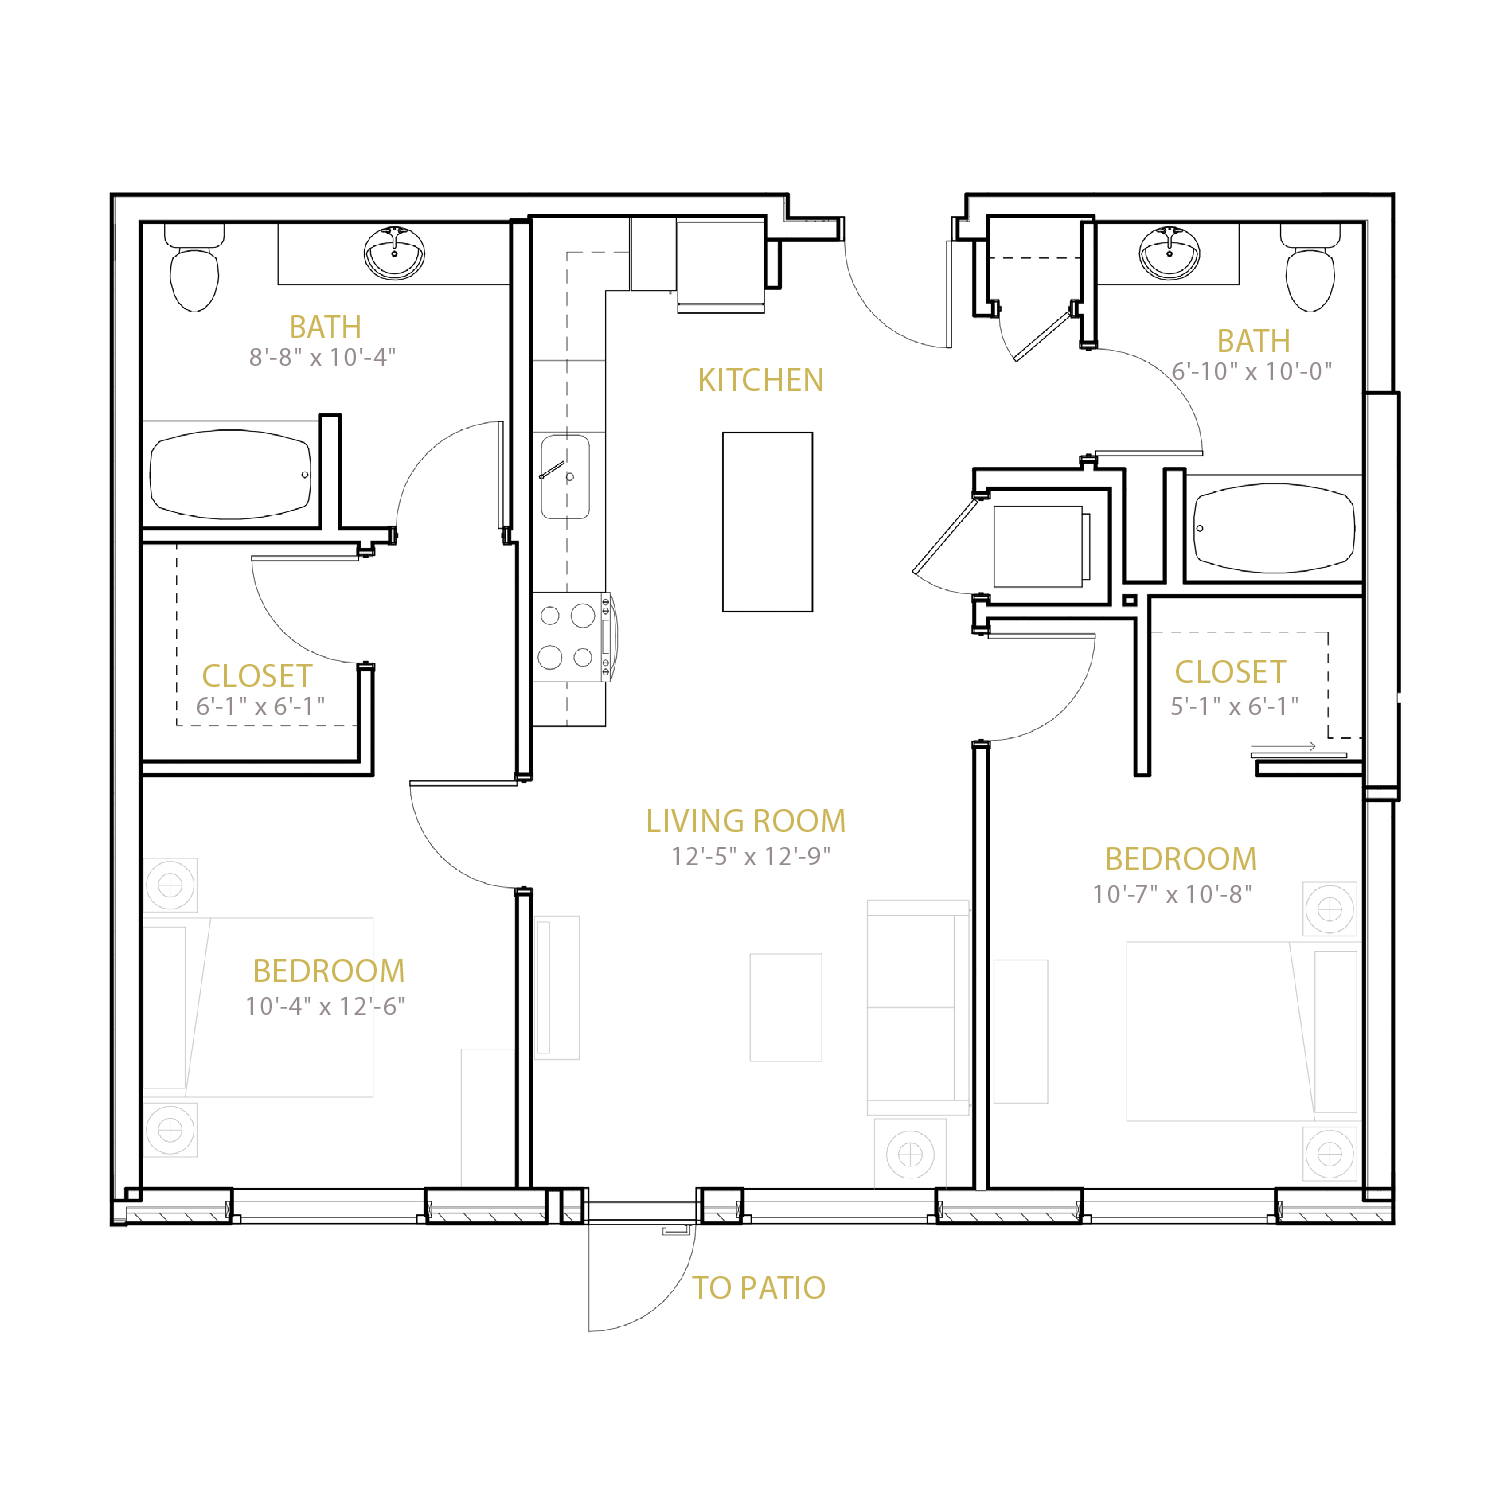 C One A floor plan diagram. Two bedrooms, two bathrooms, and an open kitchen and living area.